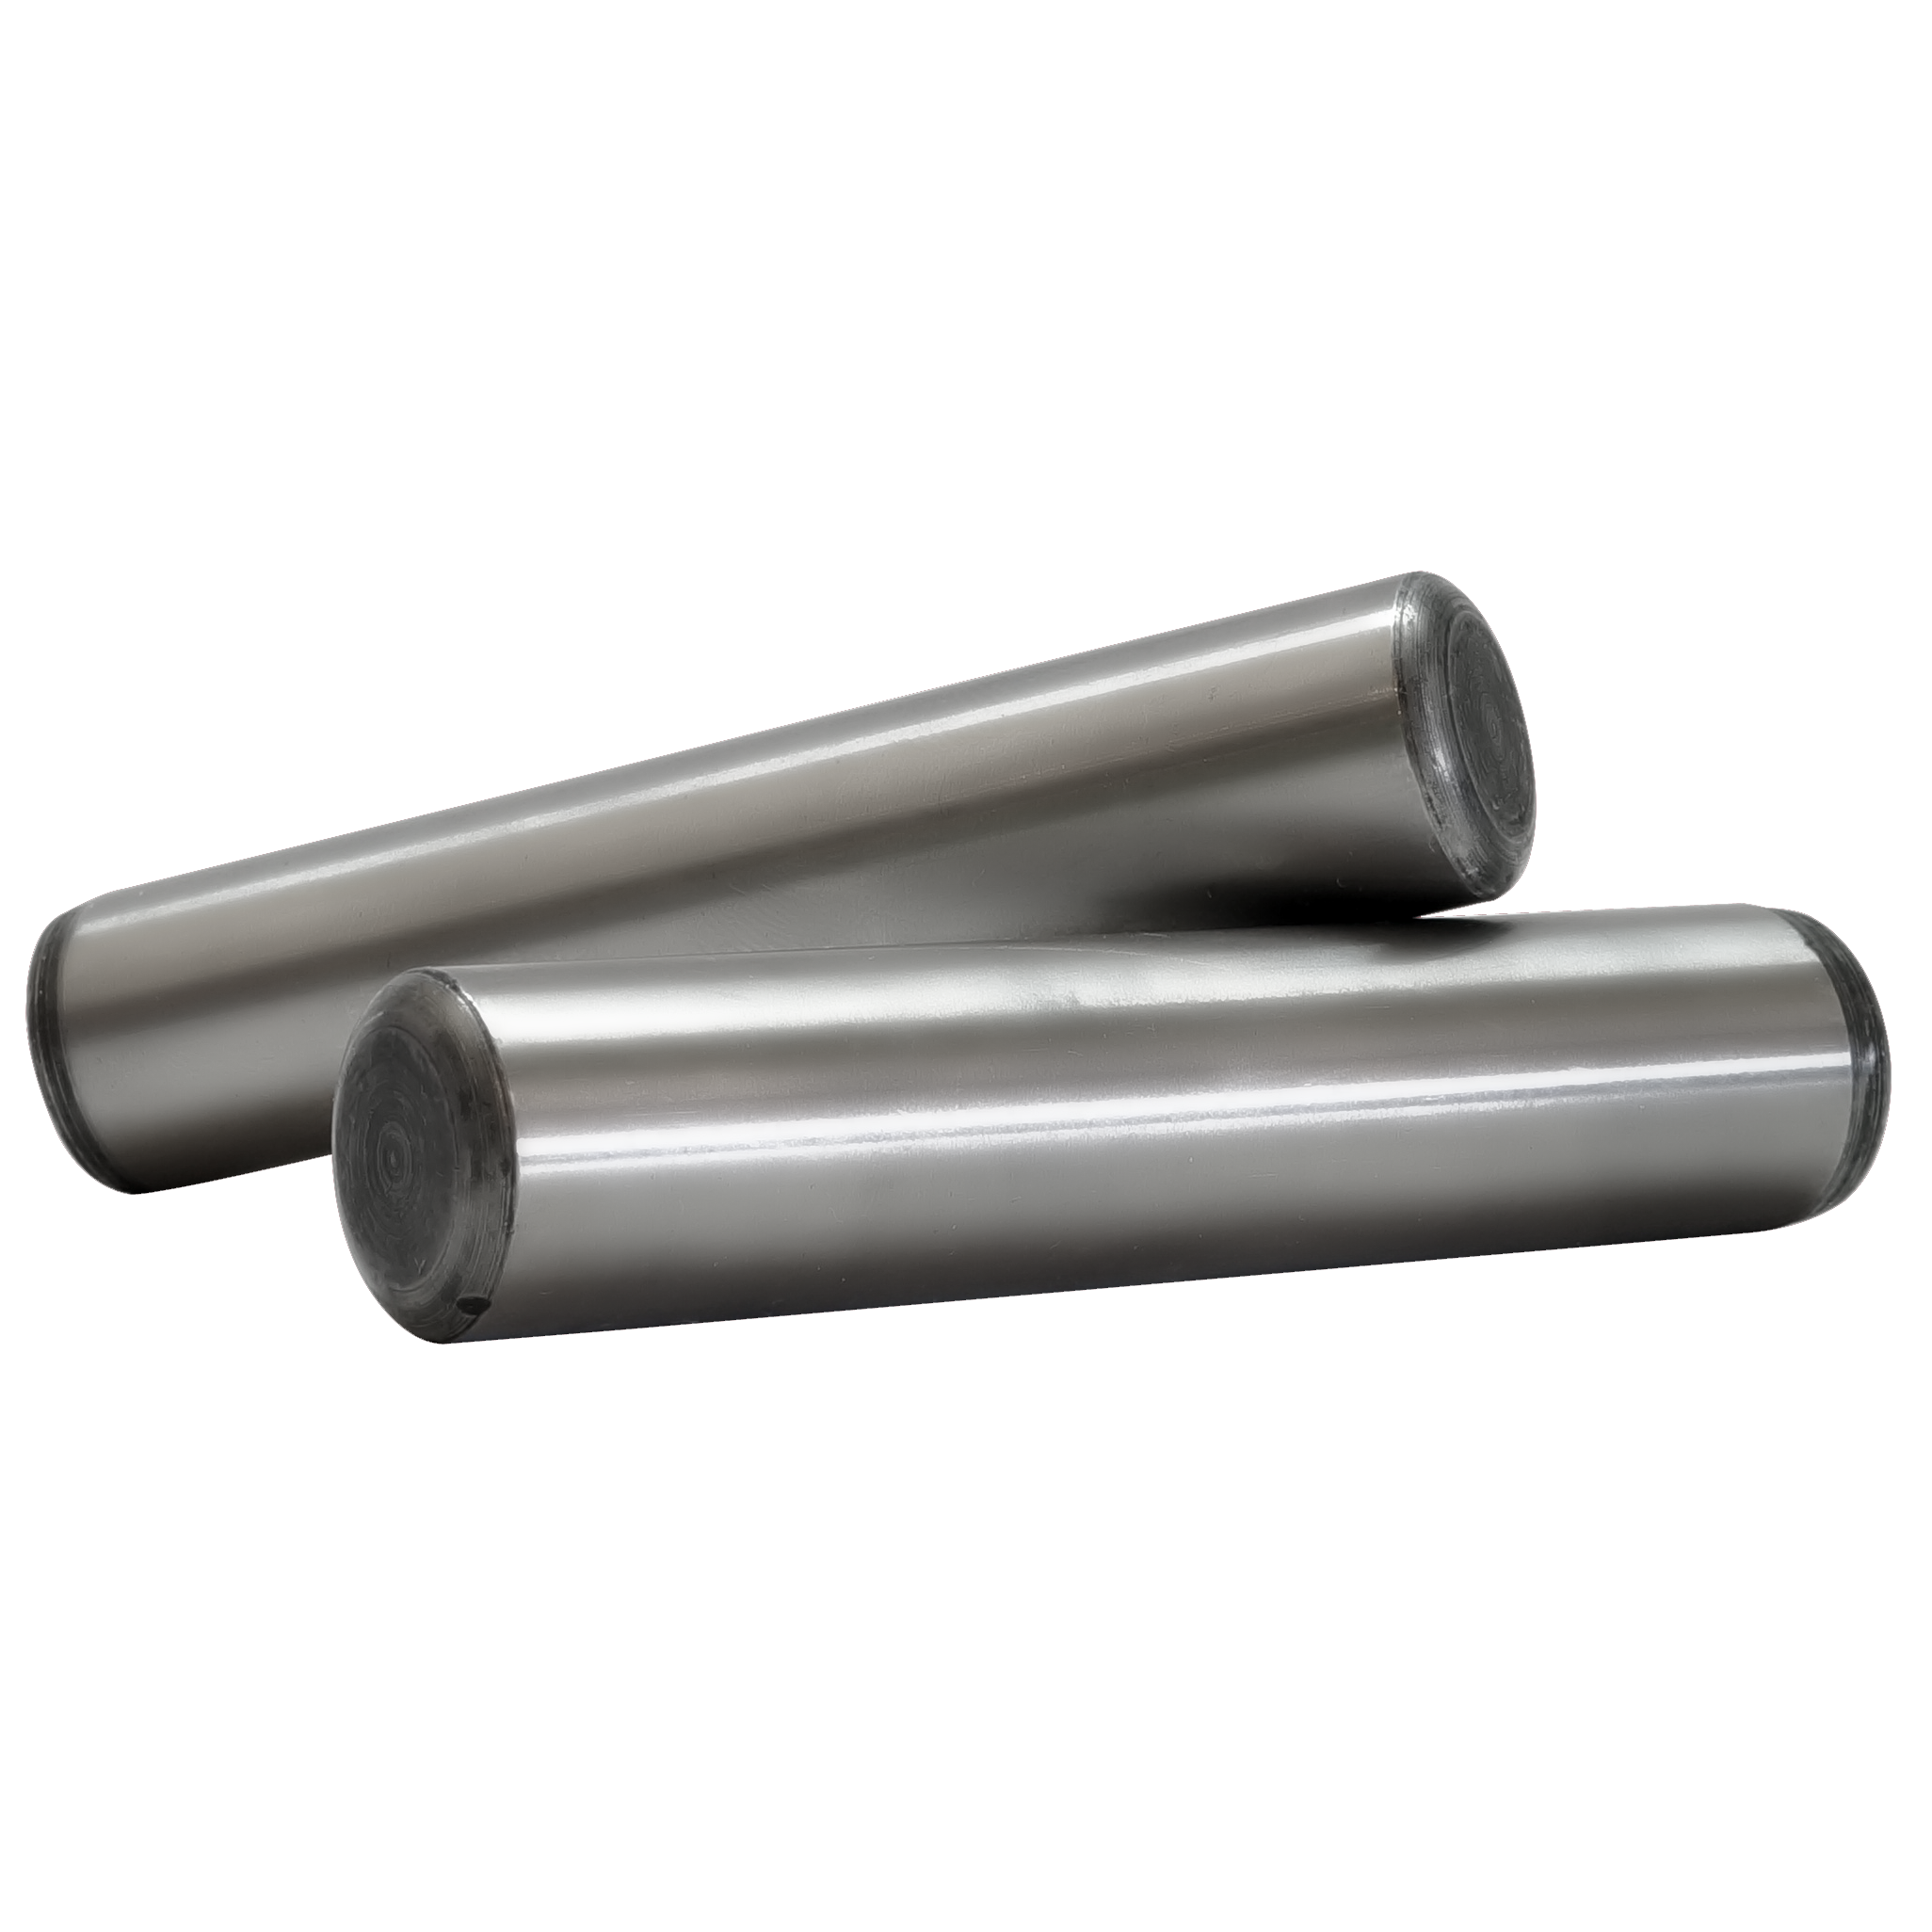 "M12x24 DIN 6325 Alloy Steel Dowel Pin Hardened Ground 0.0002"" Over Sized  (Unbrako)"